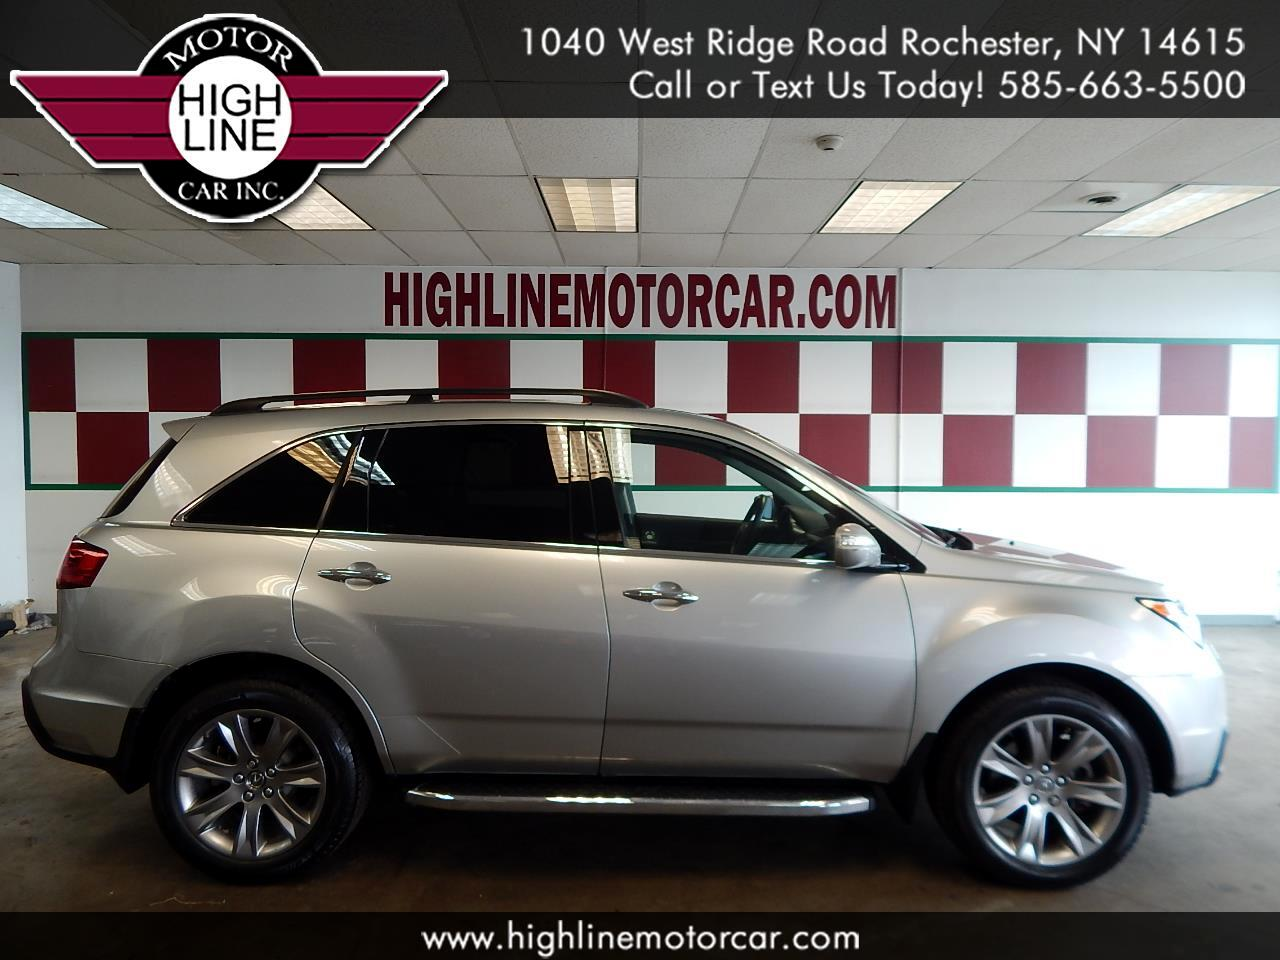 2011 Acura MDX AWD 4dr Advance/Entertainment Pkg